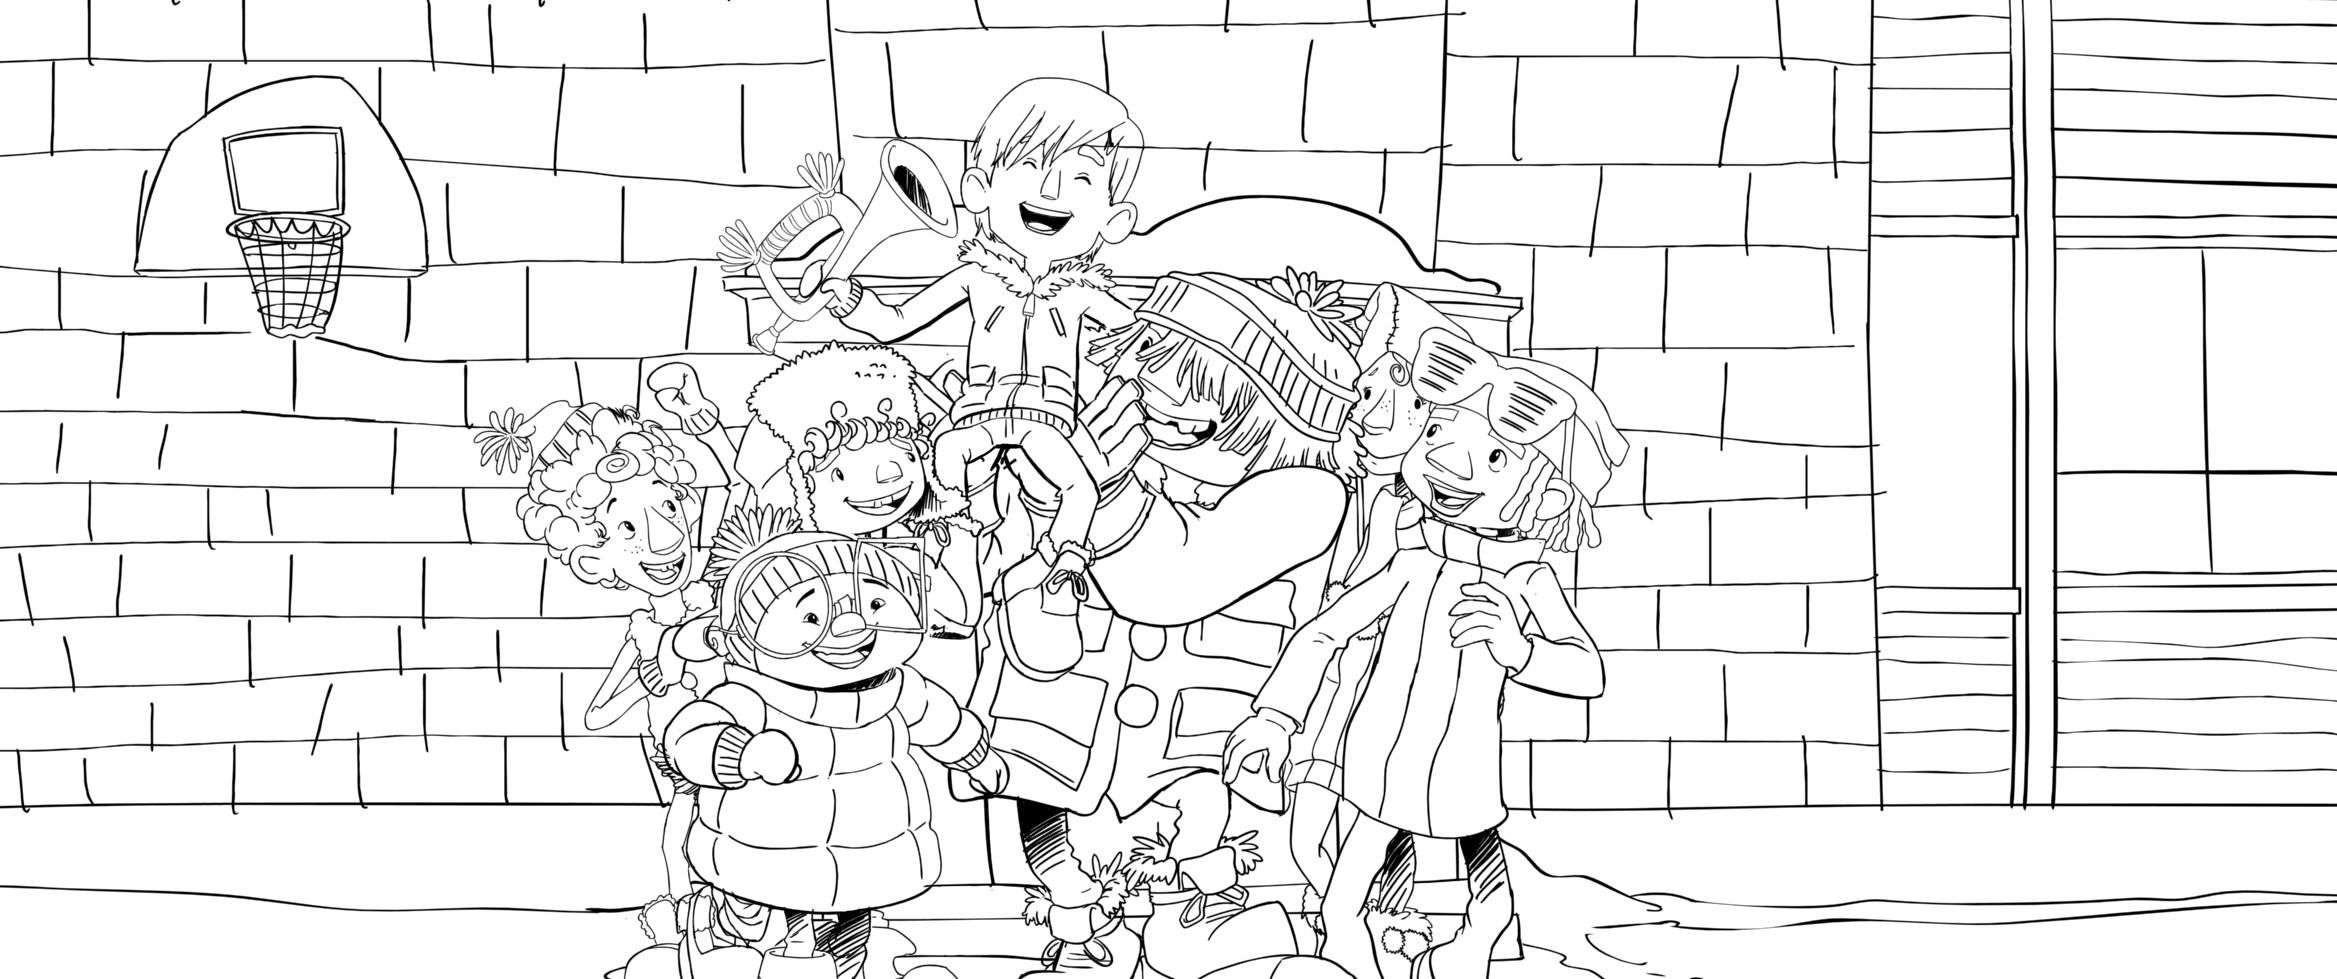 tuques coloring pages - photo#27